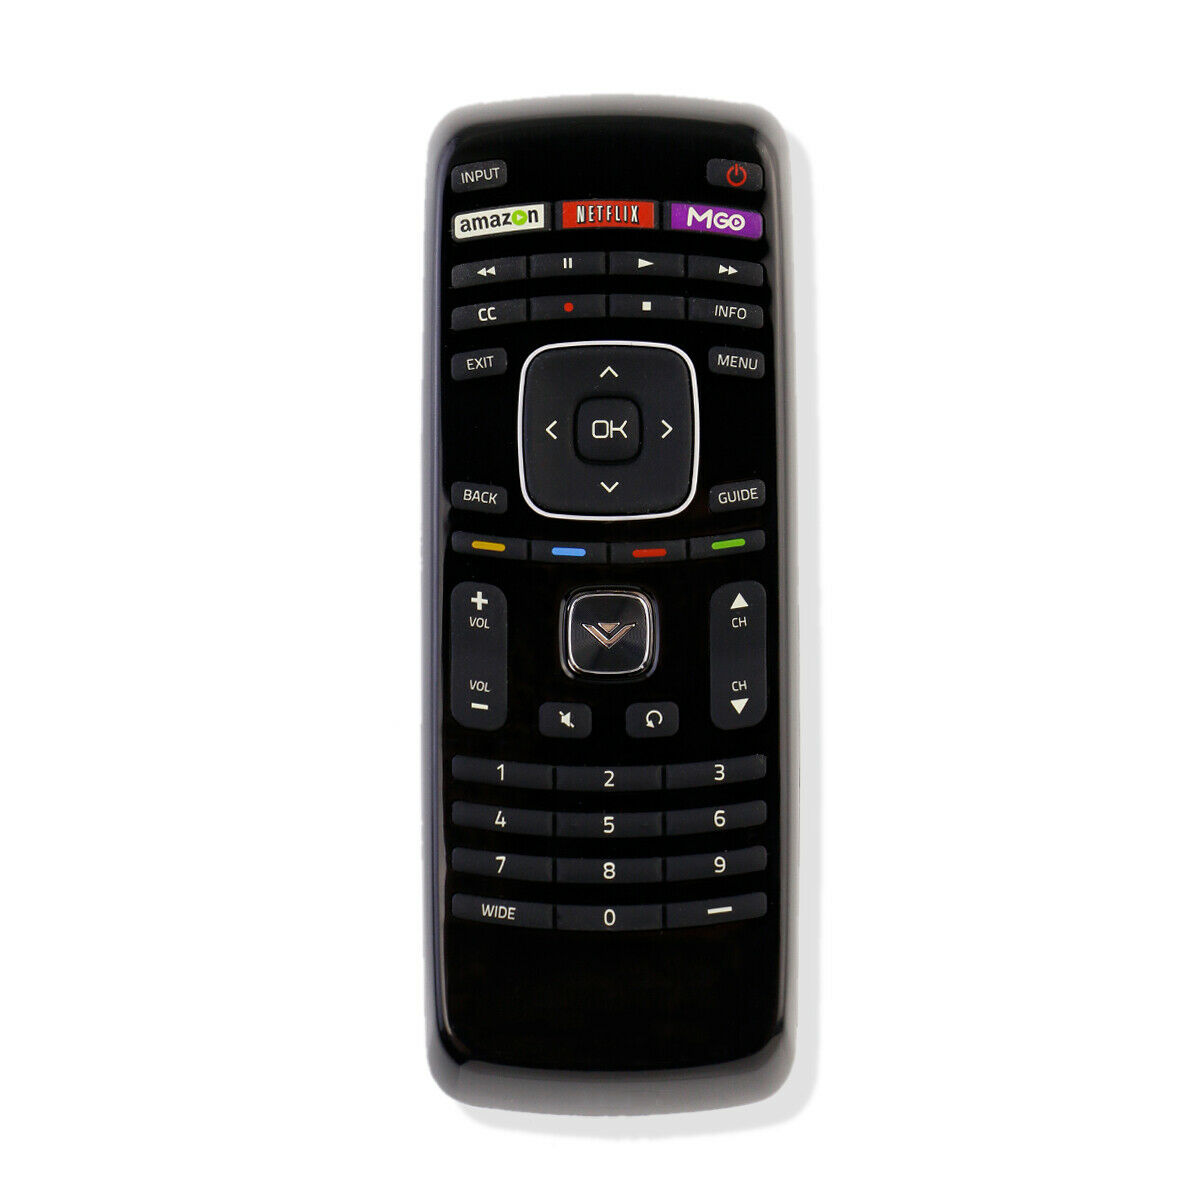 XRT112 Internet Smart TV Remote Control With M-GO Netflix Am